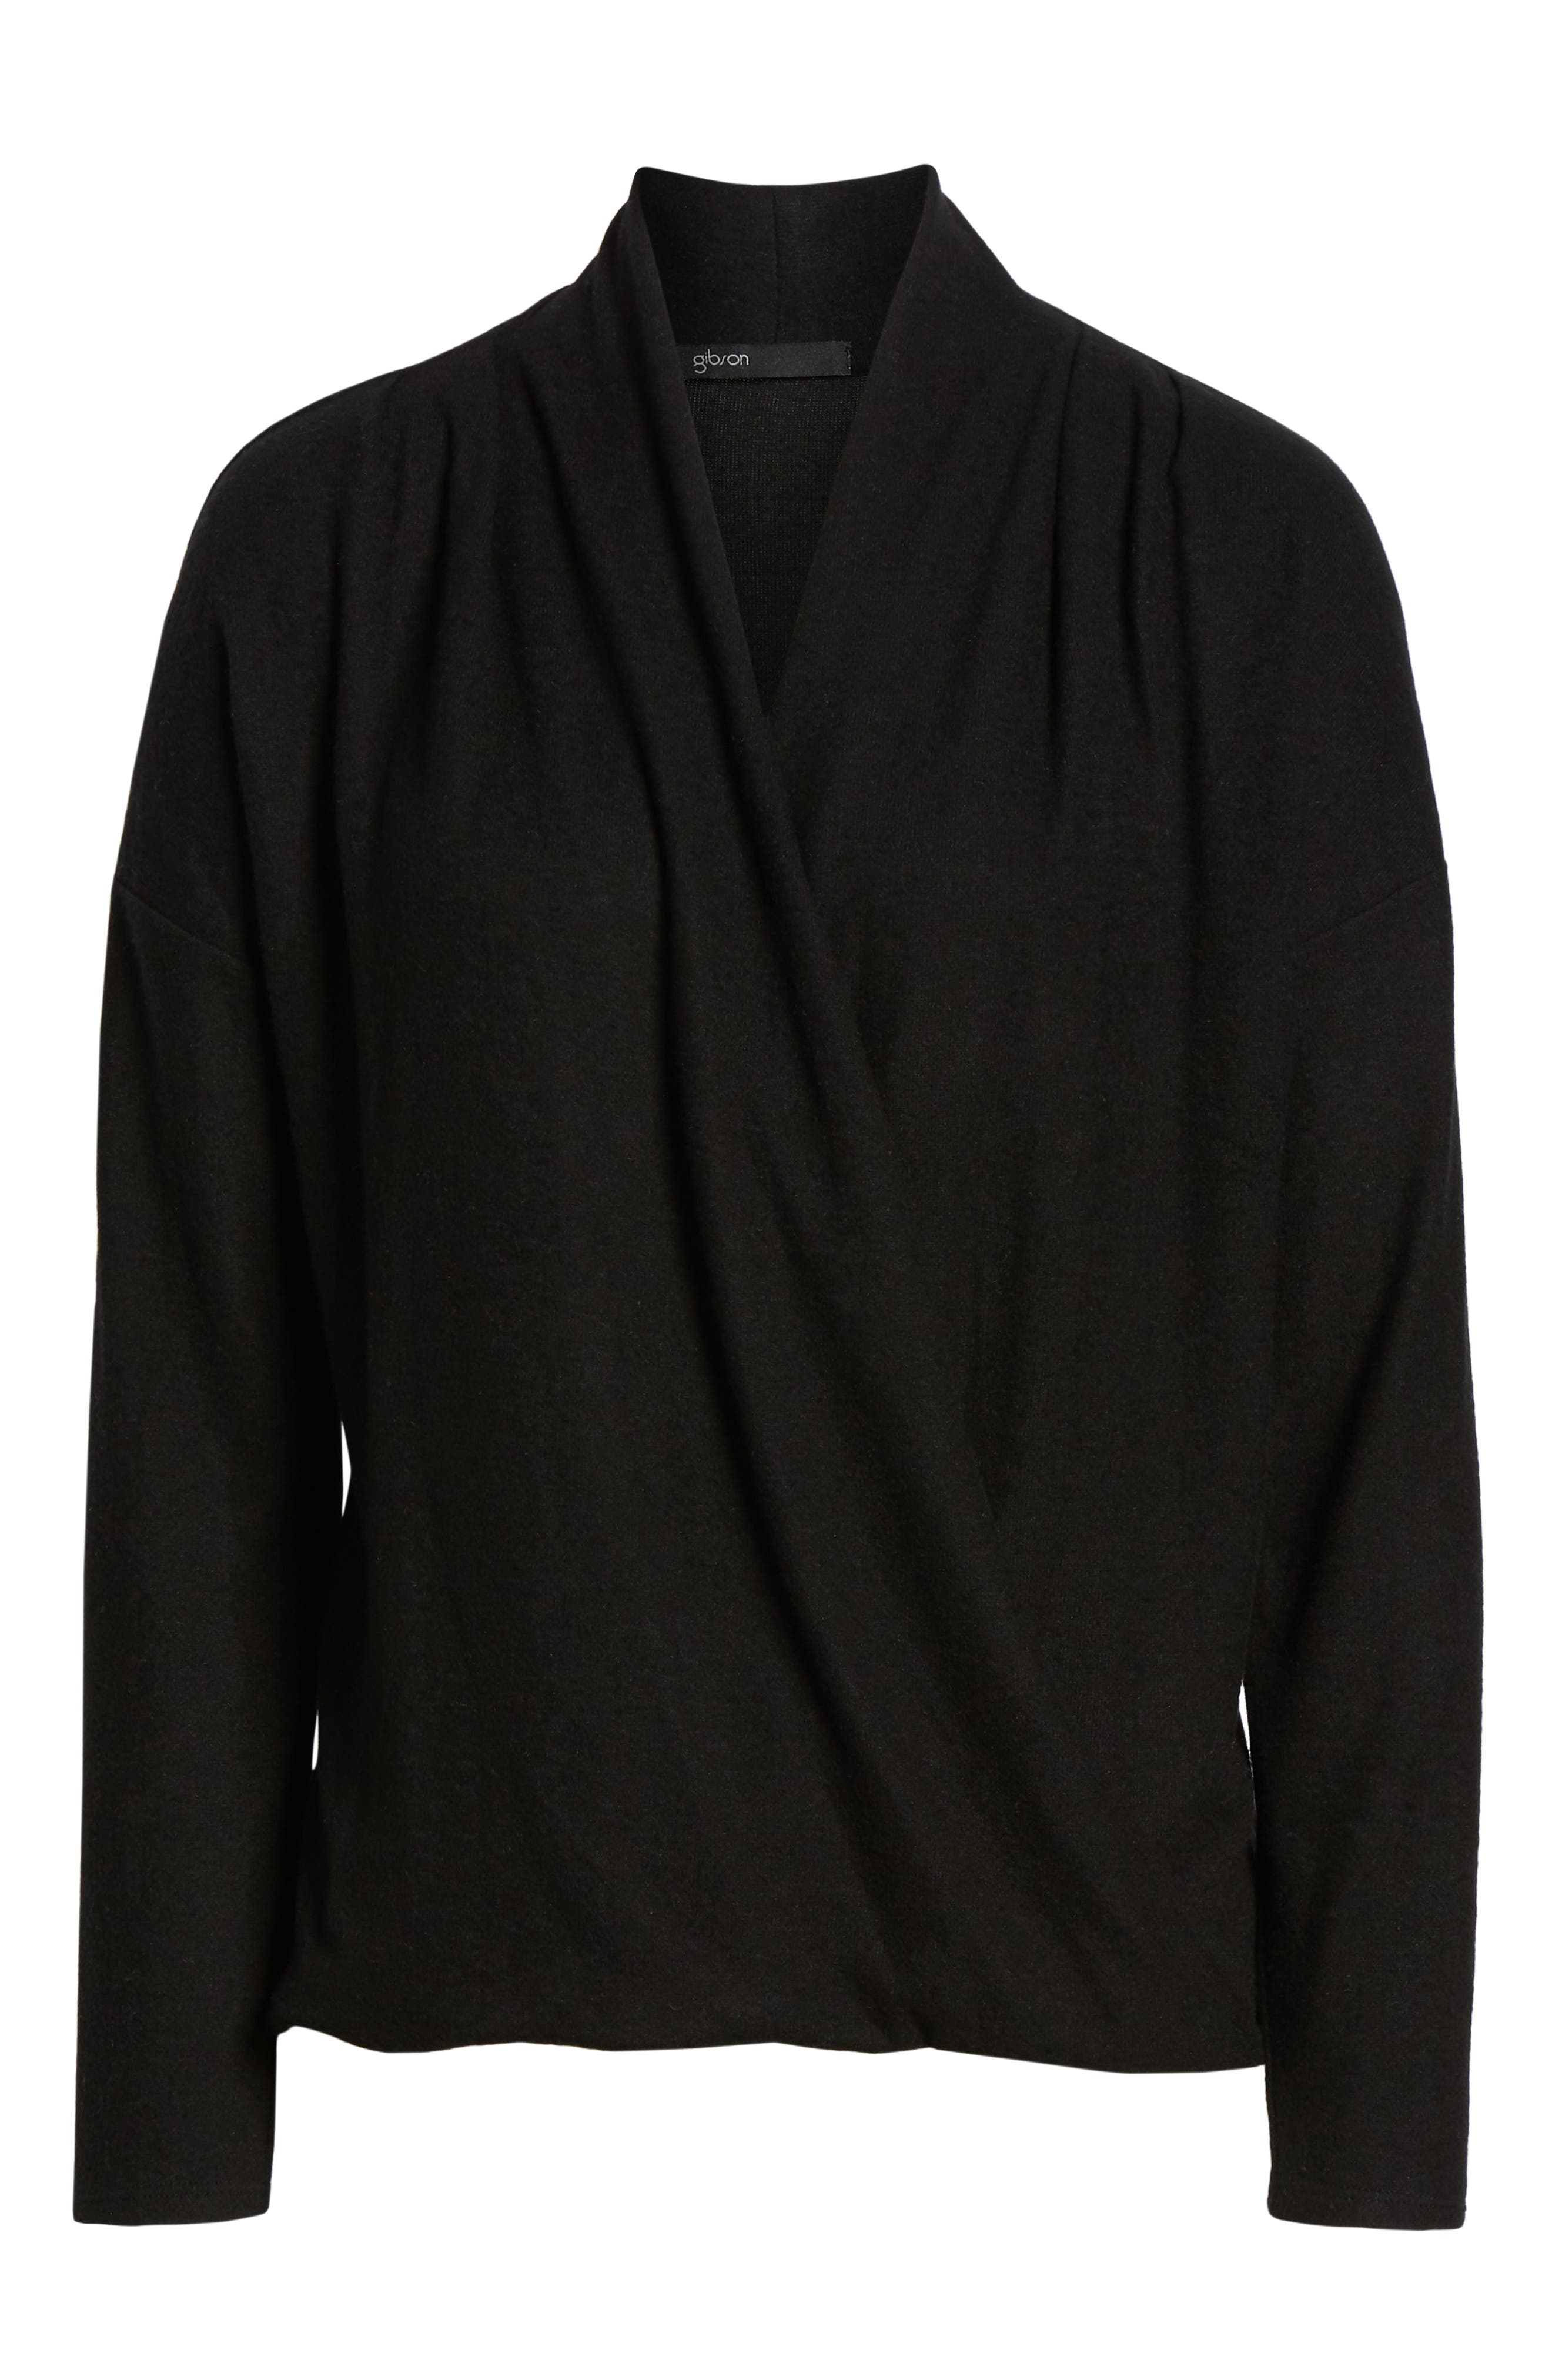 GIBSON, x Living in Yellow Diana Cozy Knit Wrap Top, Alternate thumbnail 6, color, SOLID BLACK